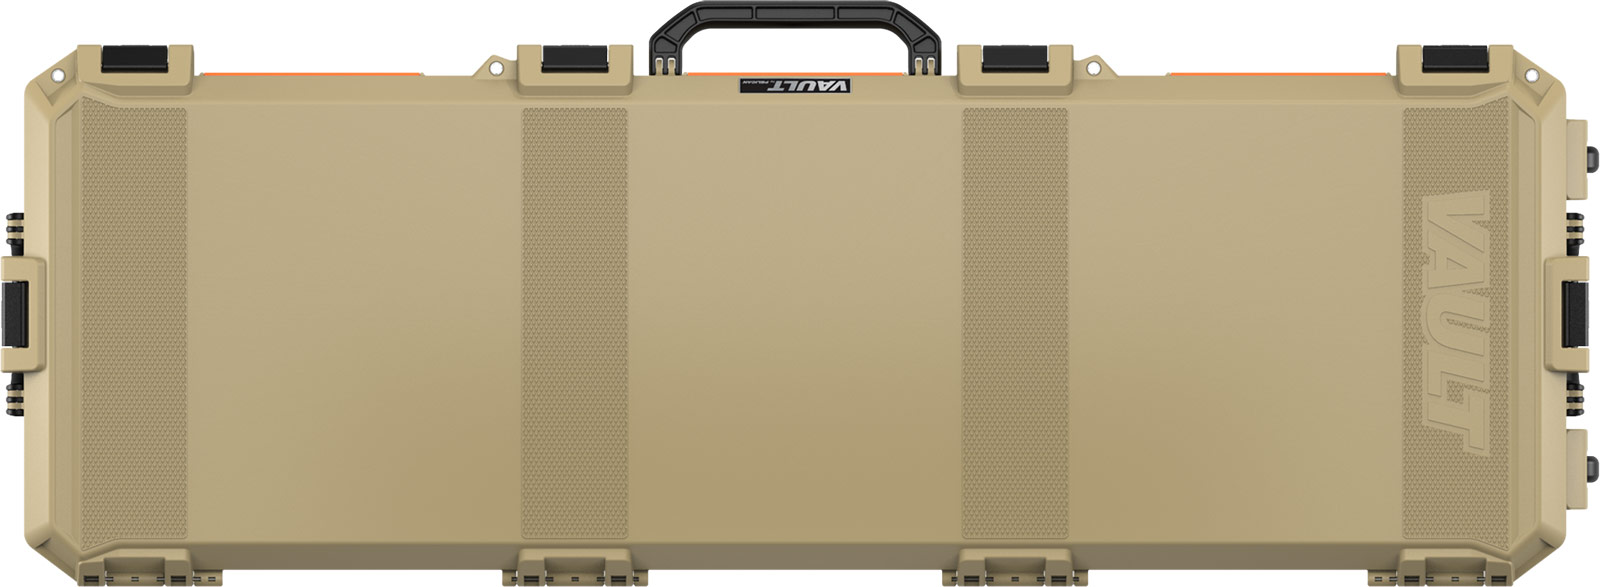 pelican hunting rifle cases v800 vualt long case